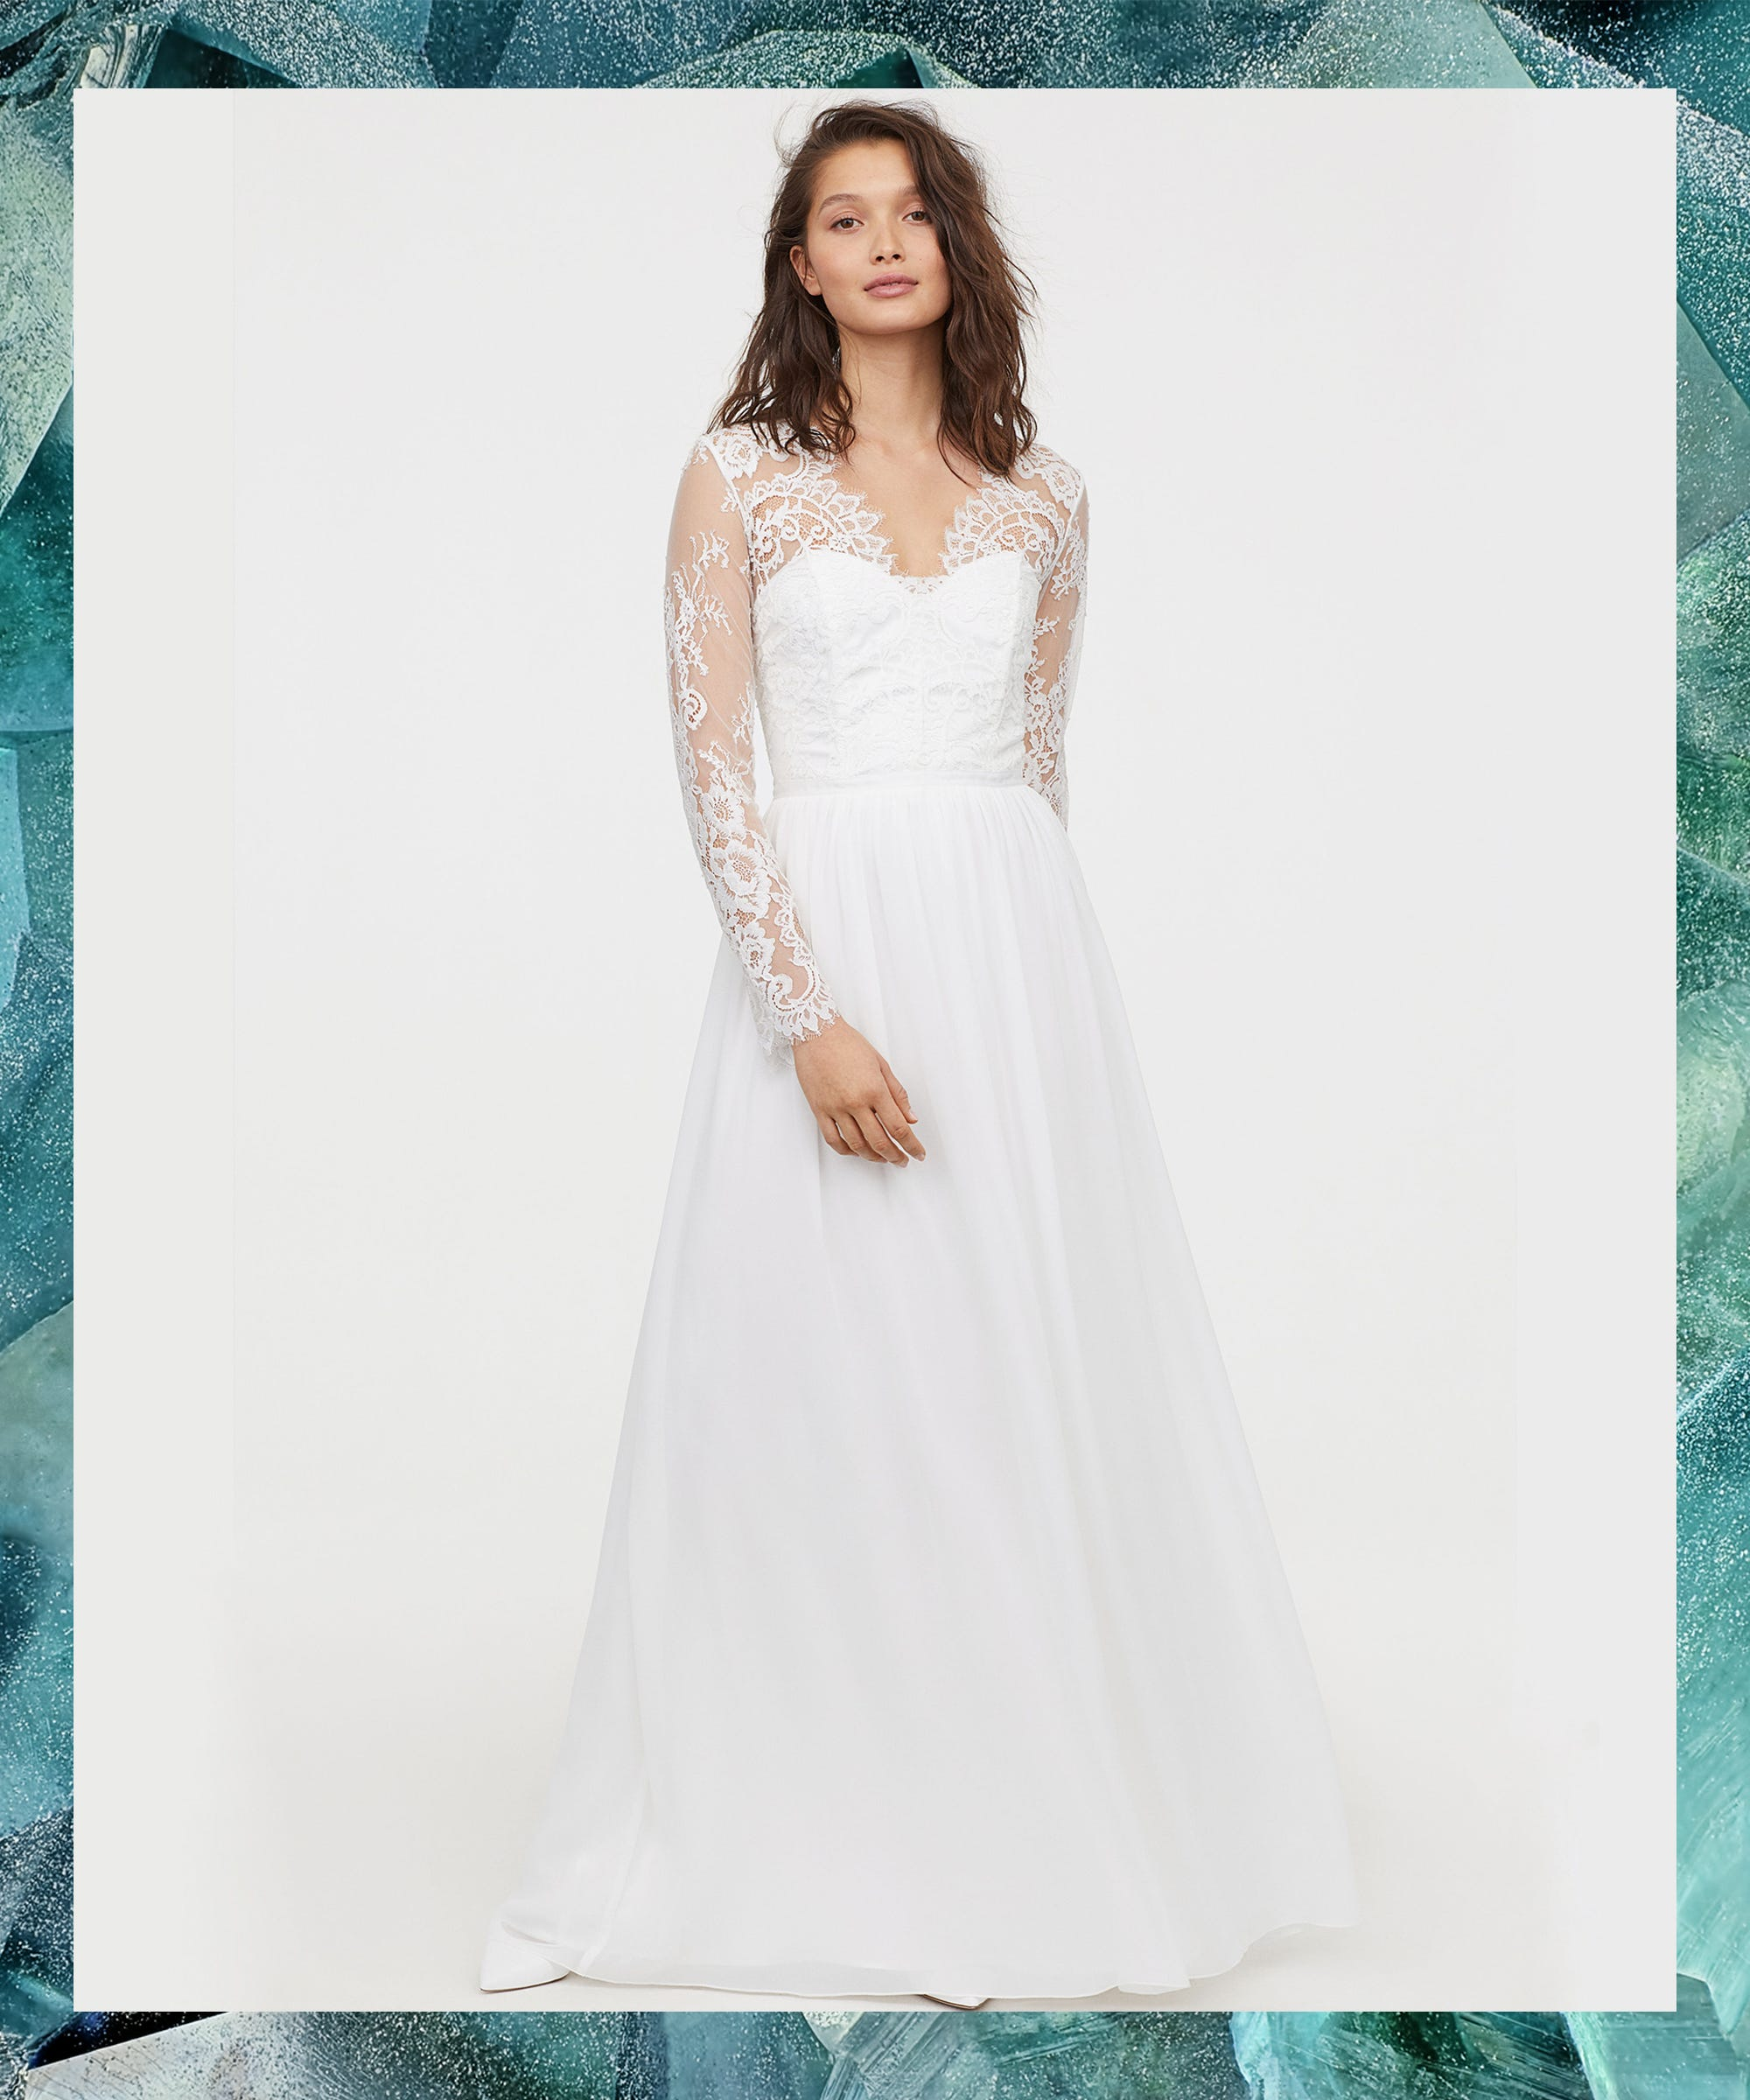 H M Restocked Kate Middleton Dress In 2019 Wedding Edit